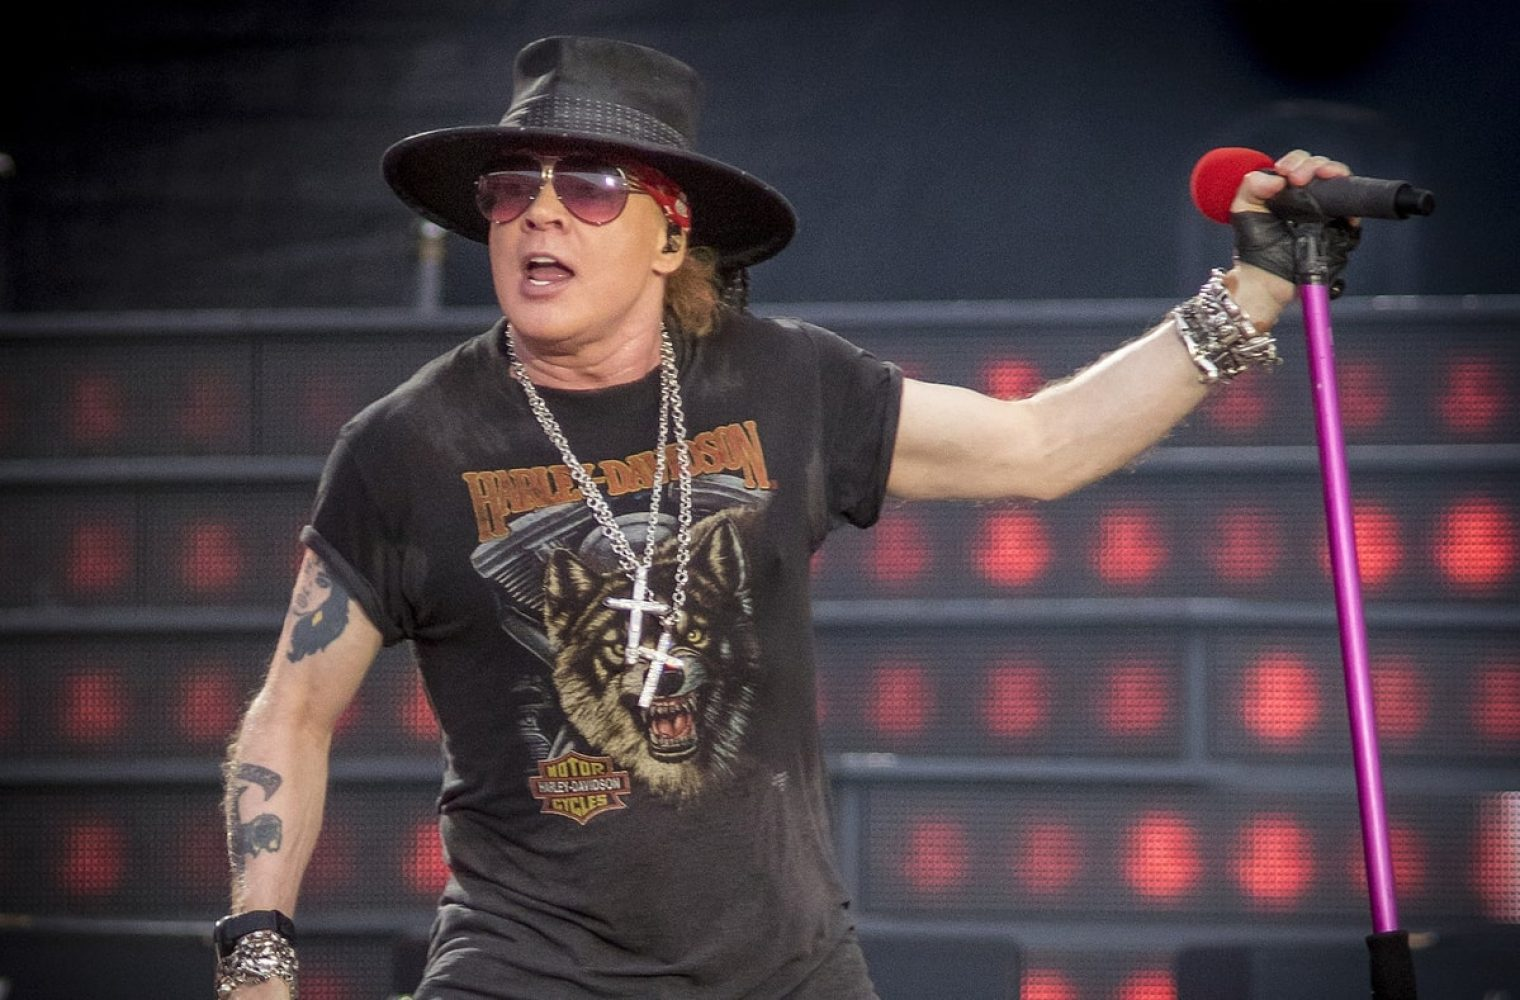 Guns N' Roses Frontman Axl Rose Falls On Stage During Vegas Show (w/Video)